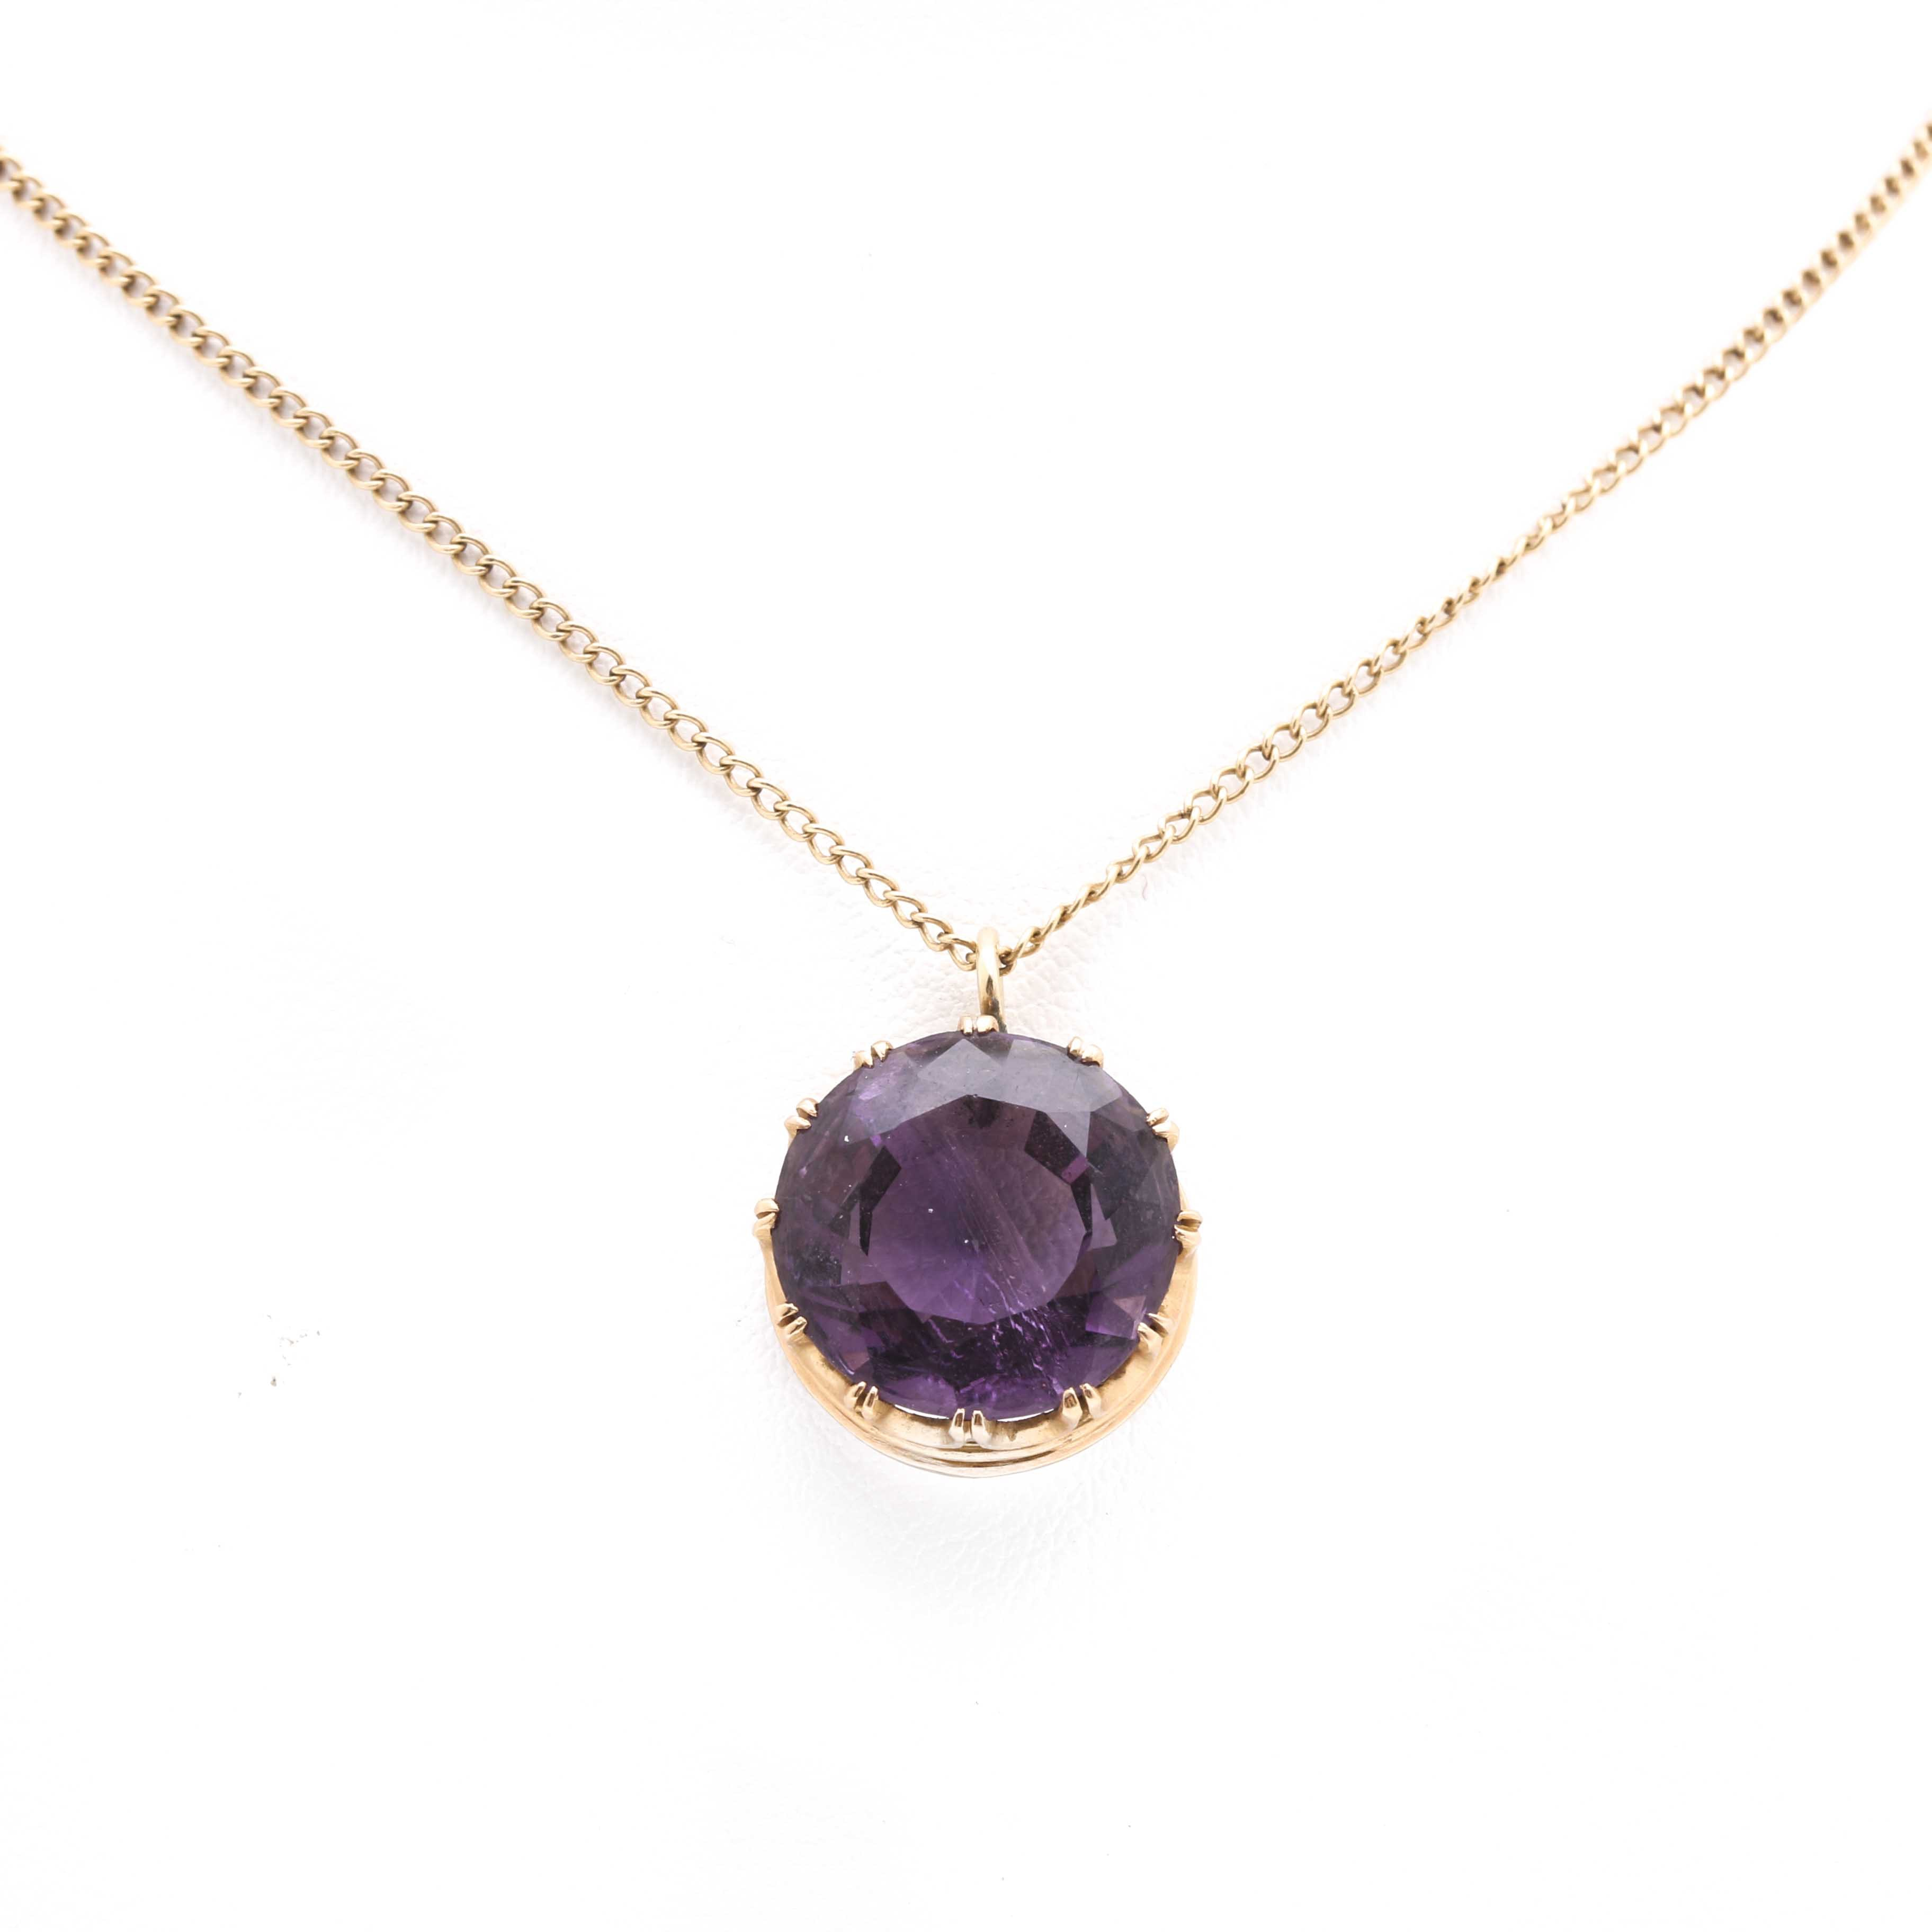 18K Yellow Gold Amethyst Pendant With 14K Chain